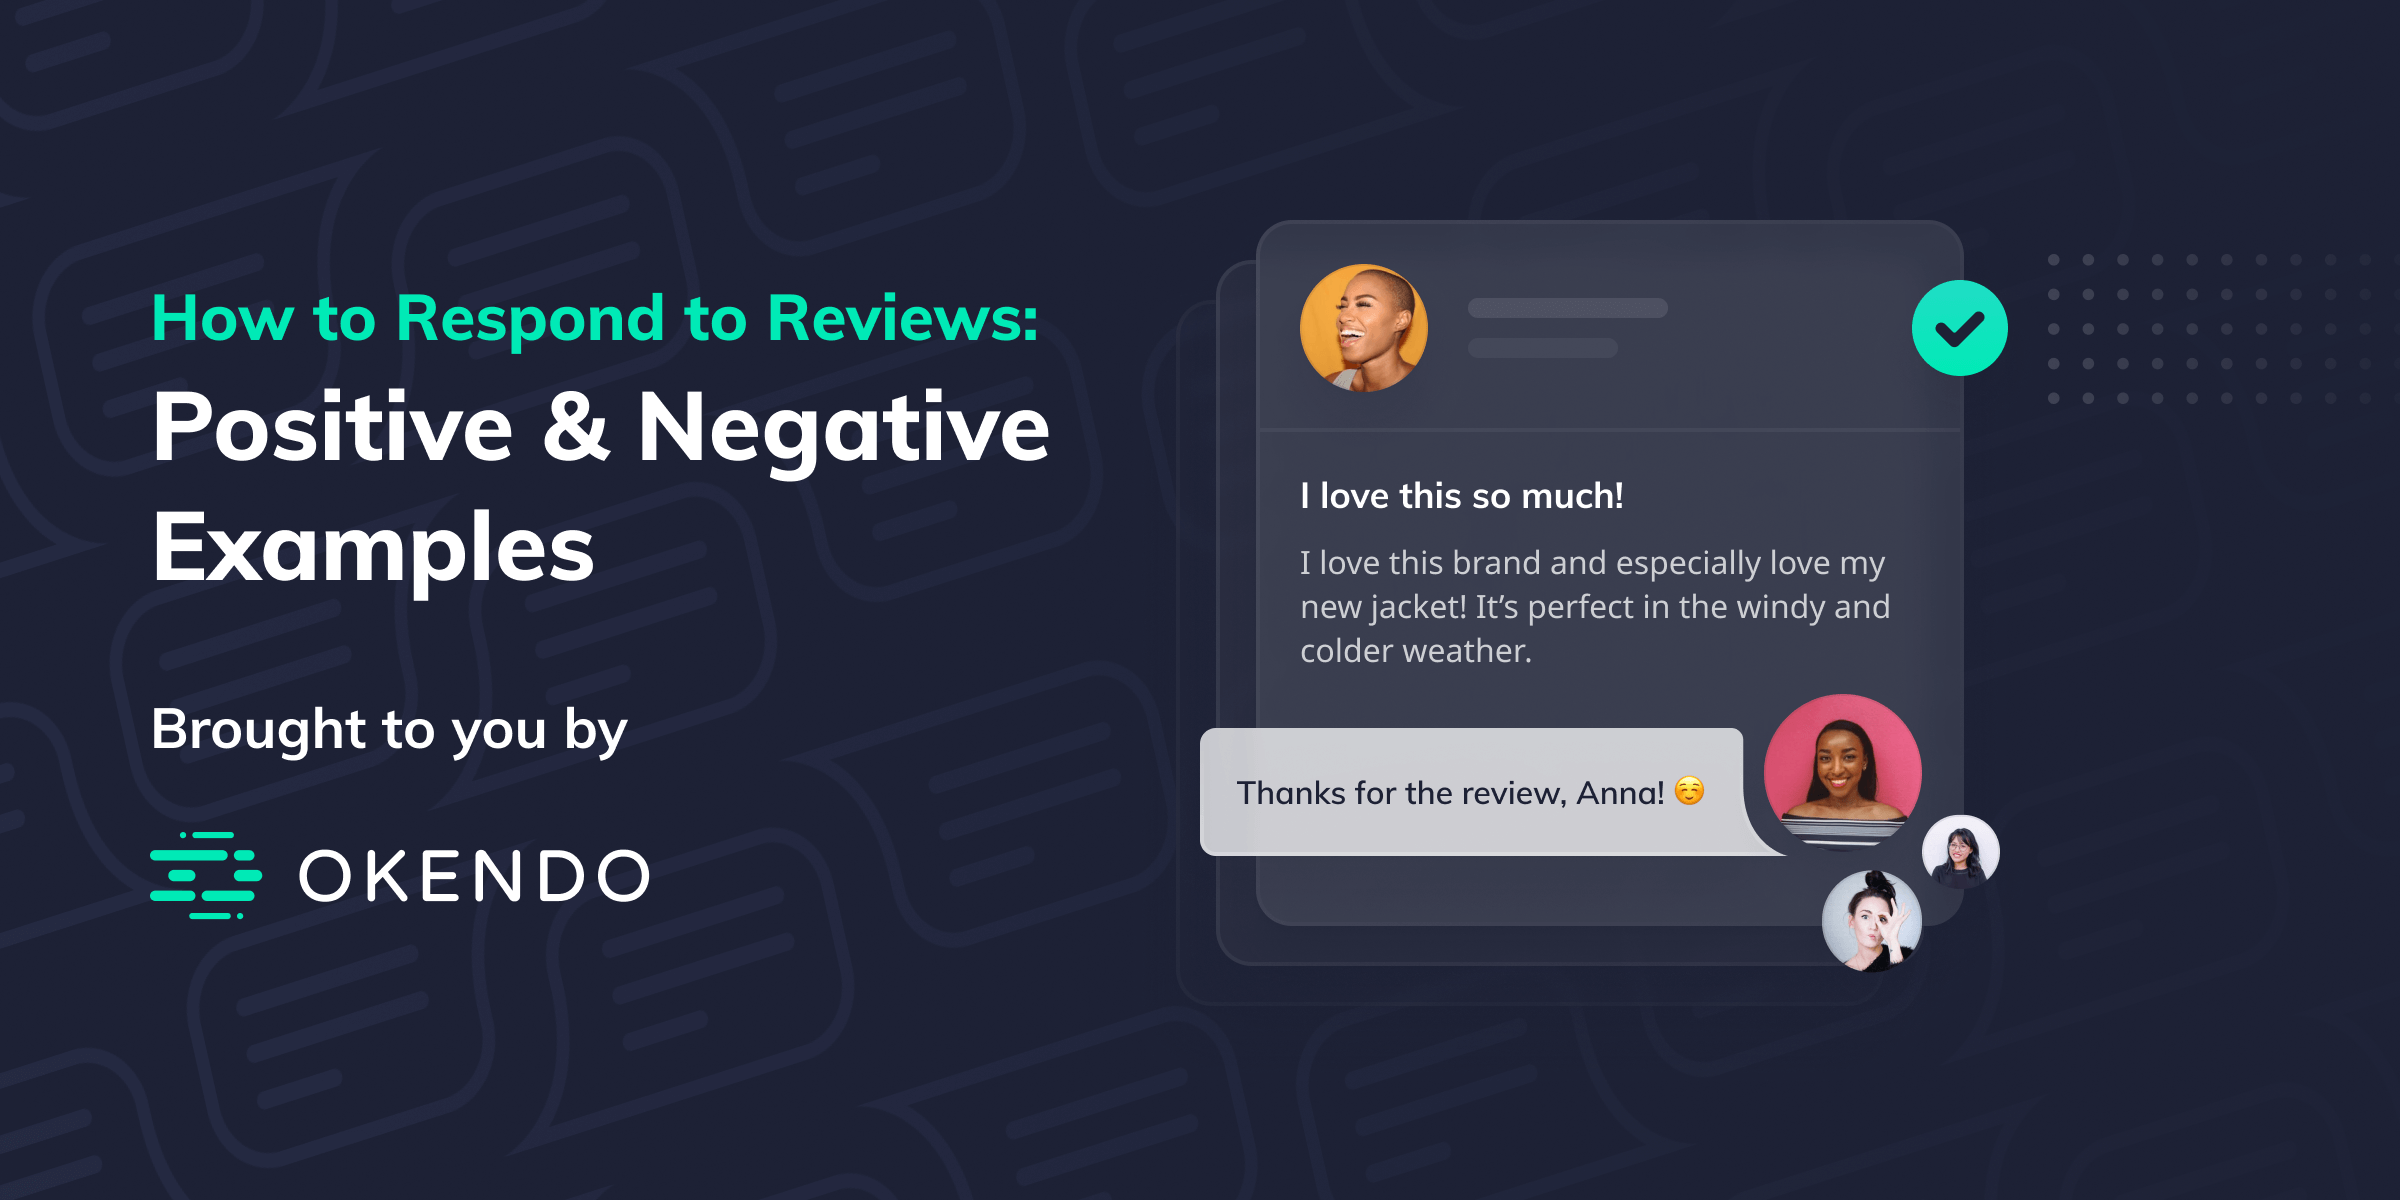 How to Respond to Reviews: Positive & Negative Examples